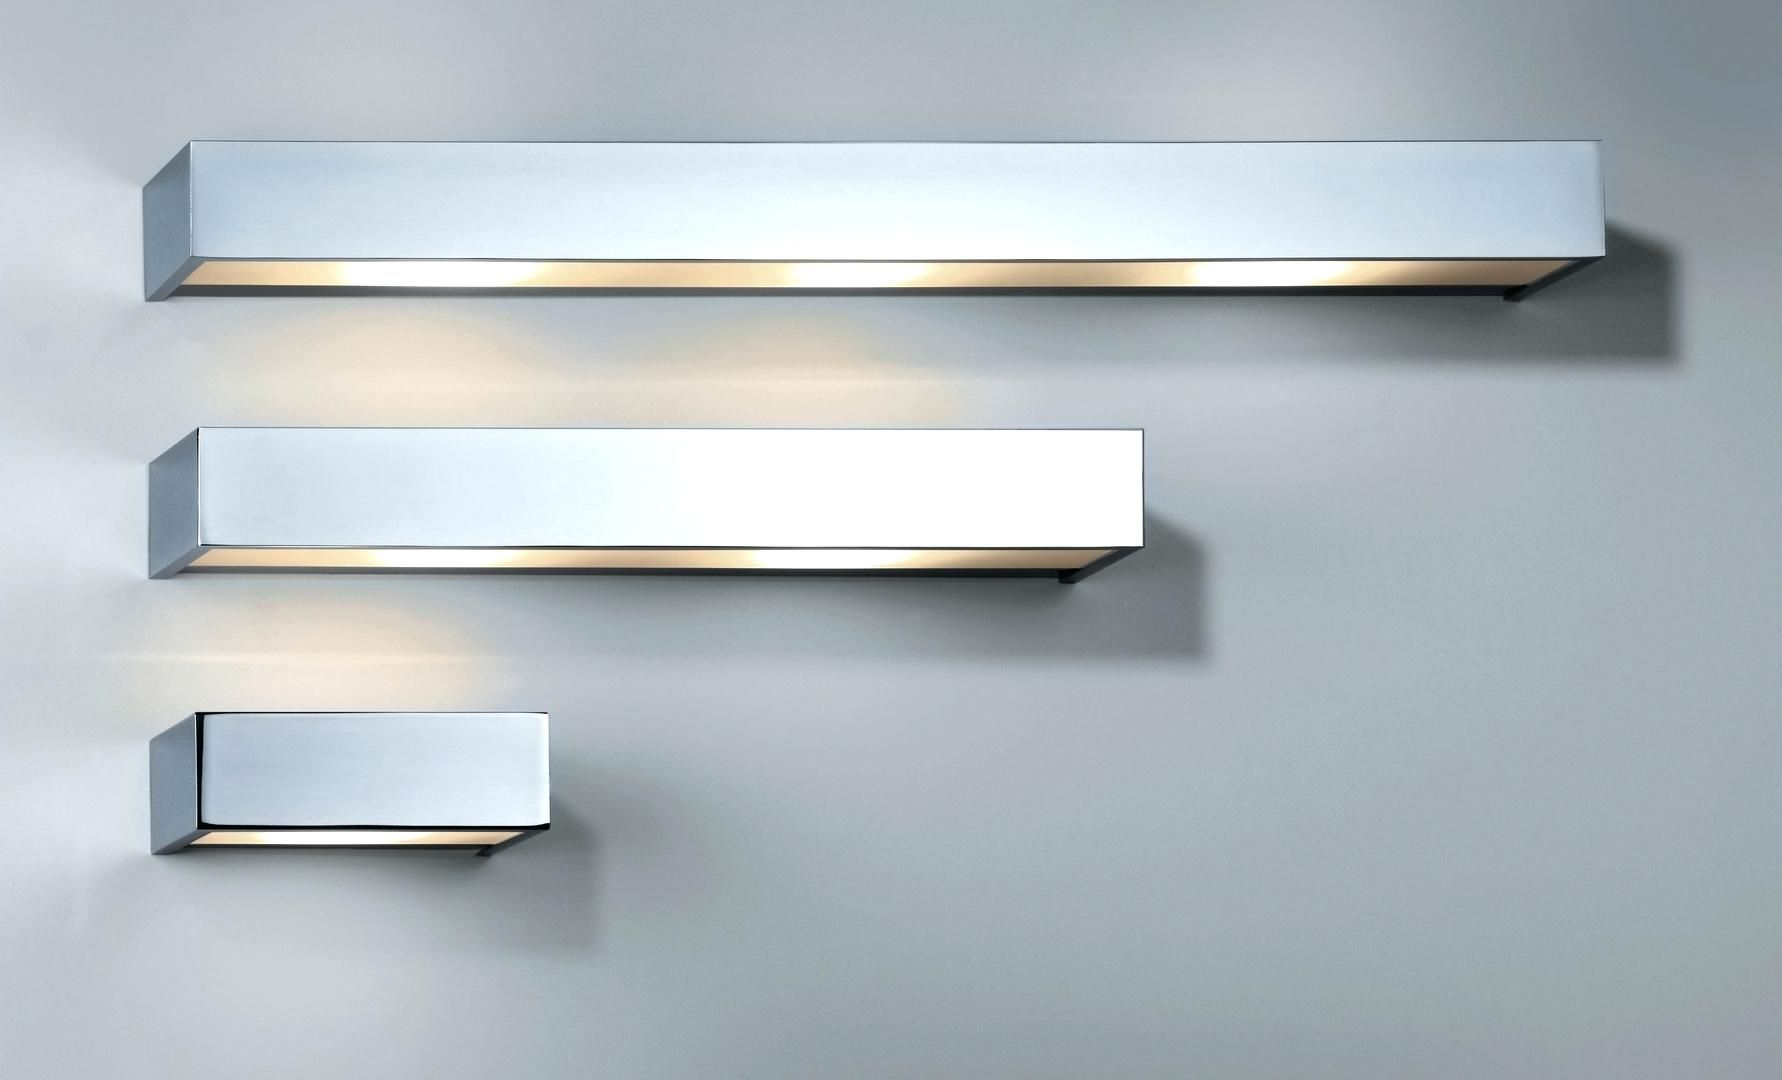 Planlicht Led Wandleuchte P Forty Lineare Beleuchtung Wandleuchte Led Wandleuchten